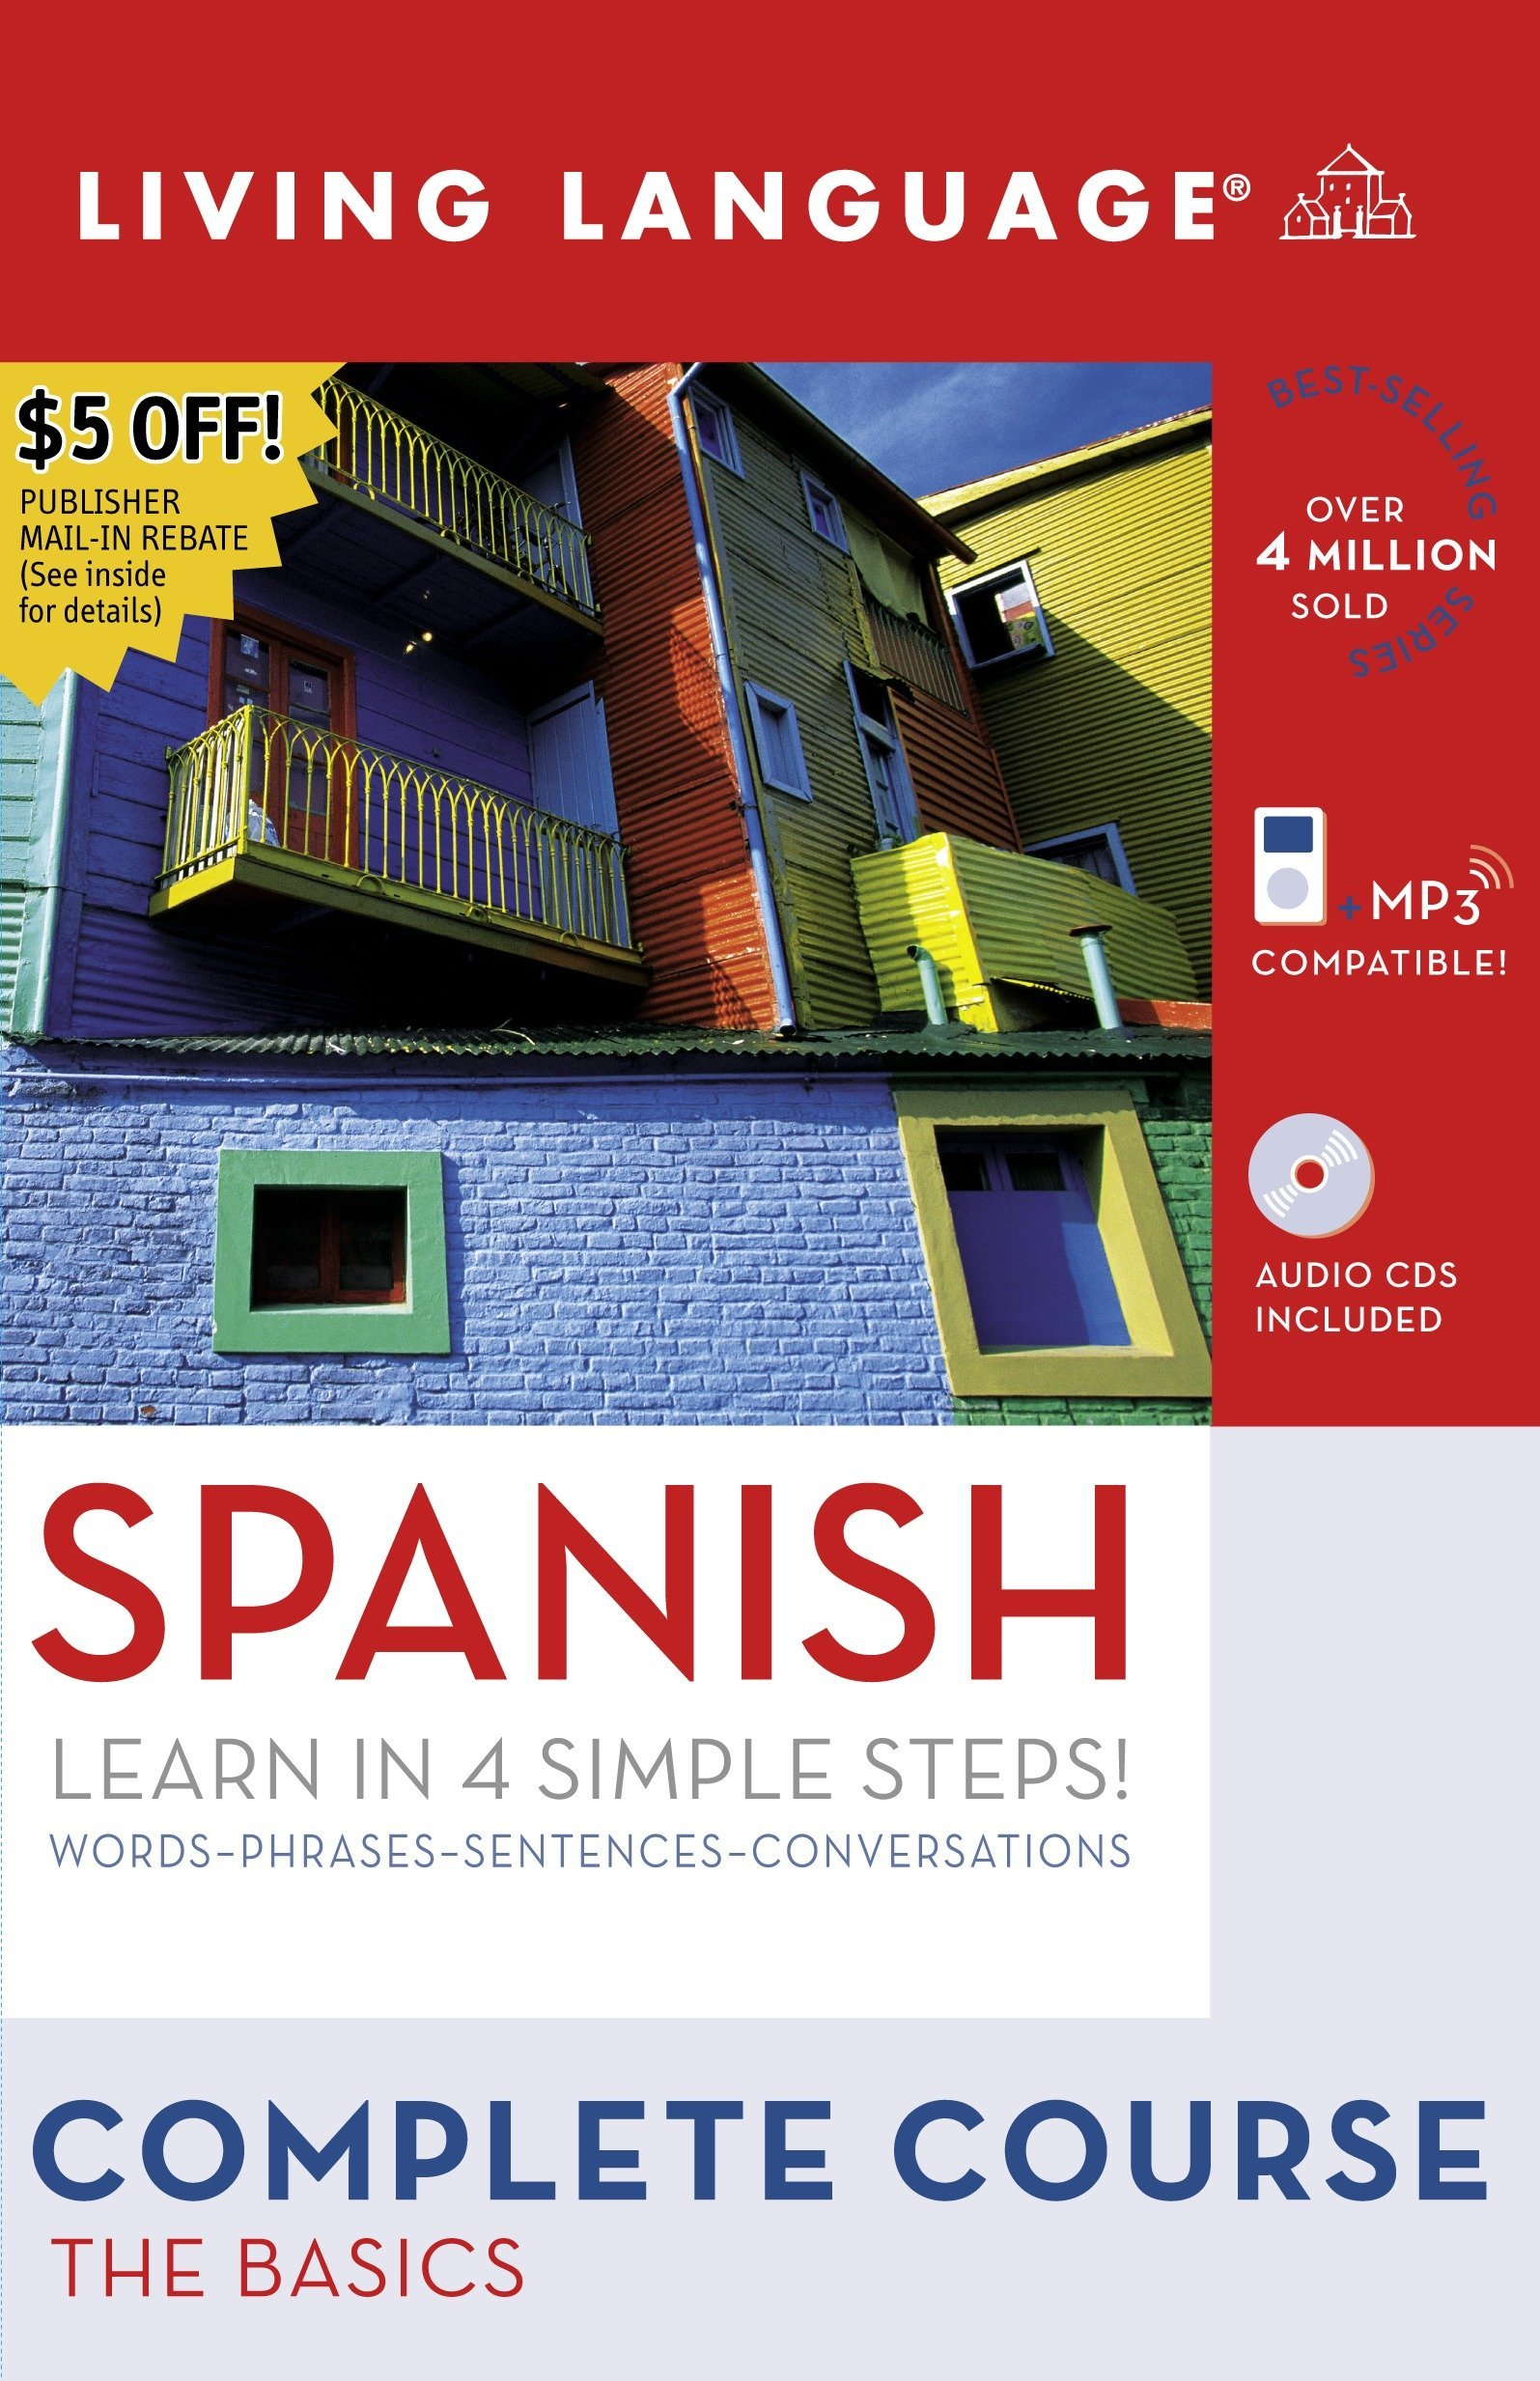 Complete Spanish: The Basics (Book and CD Set): Includes Coursebook, 4 Audio CDs, and Learner's Dictionary (Complete Basic Courses) by Living Language